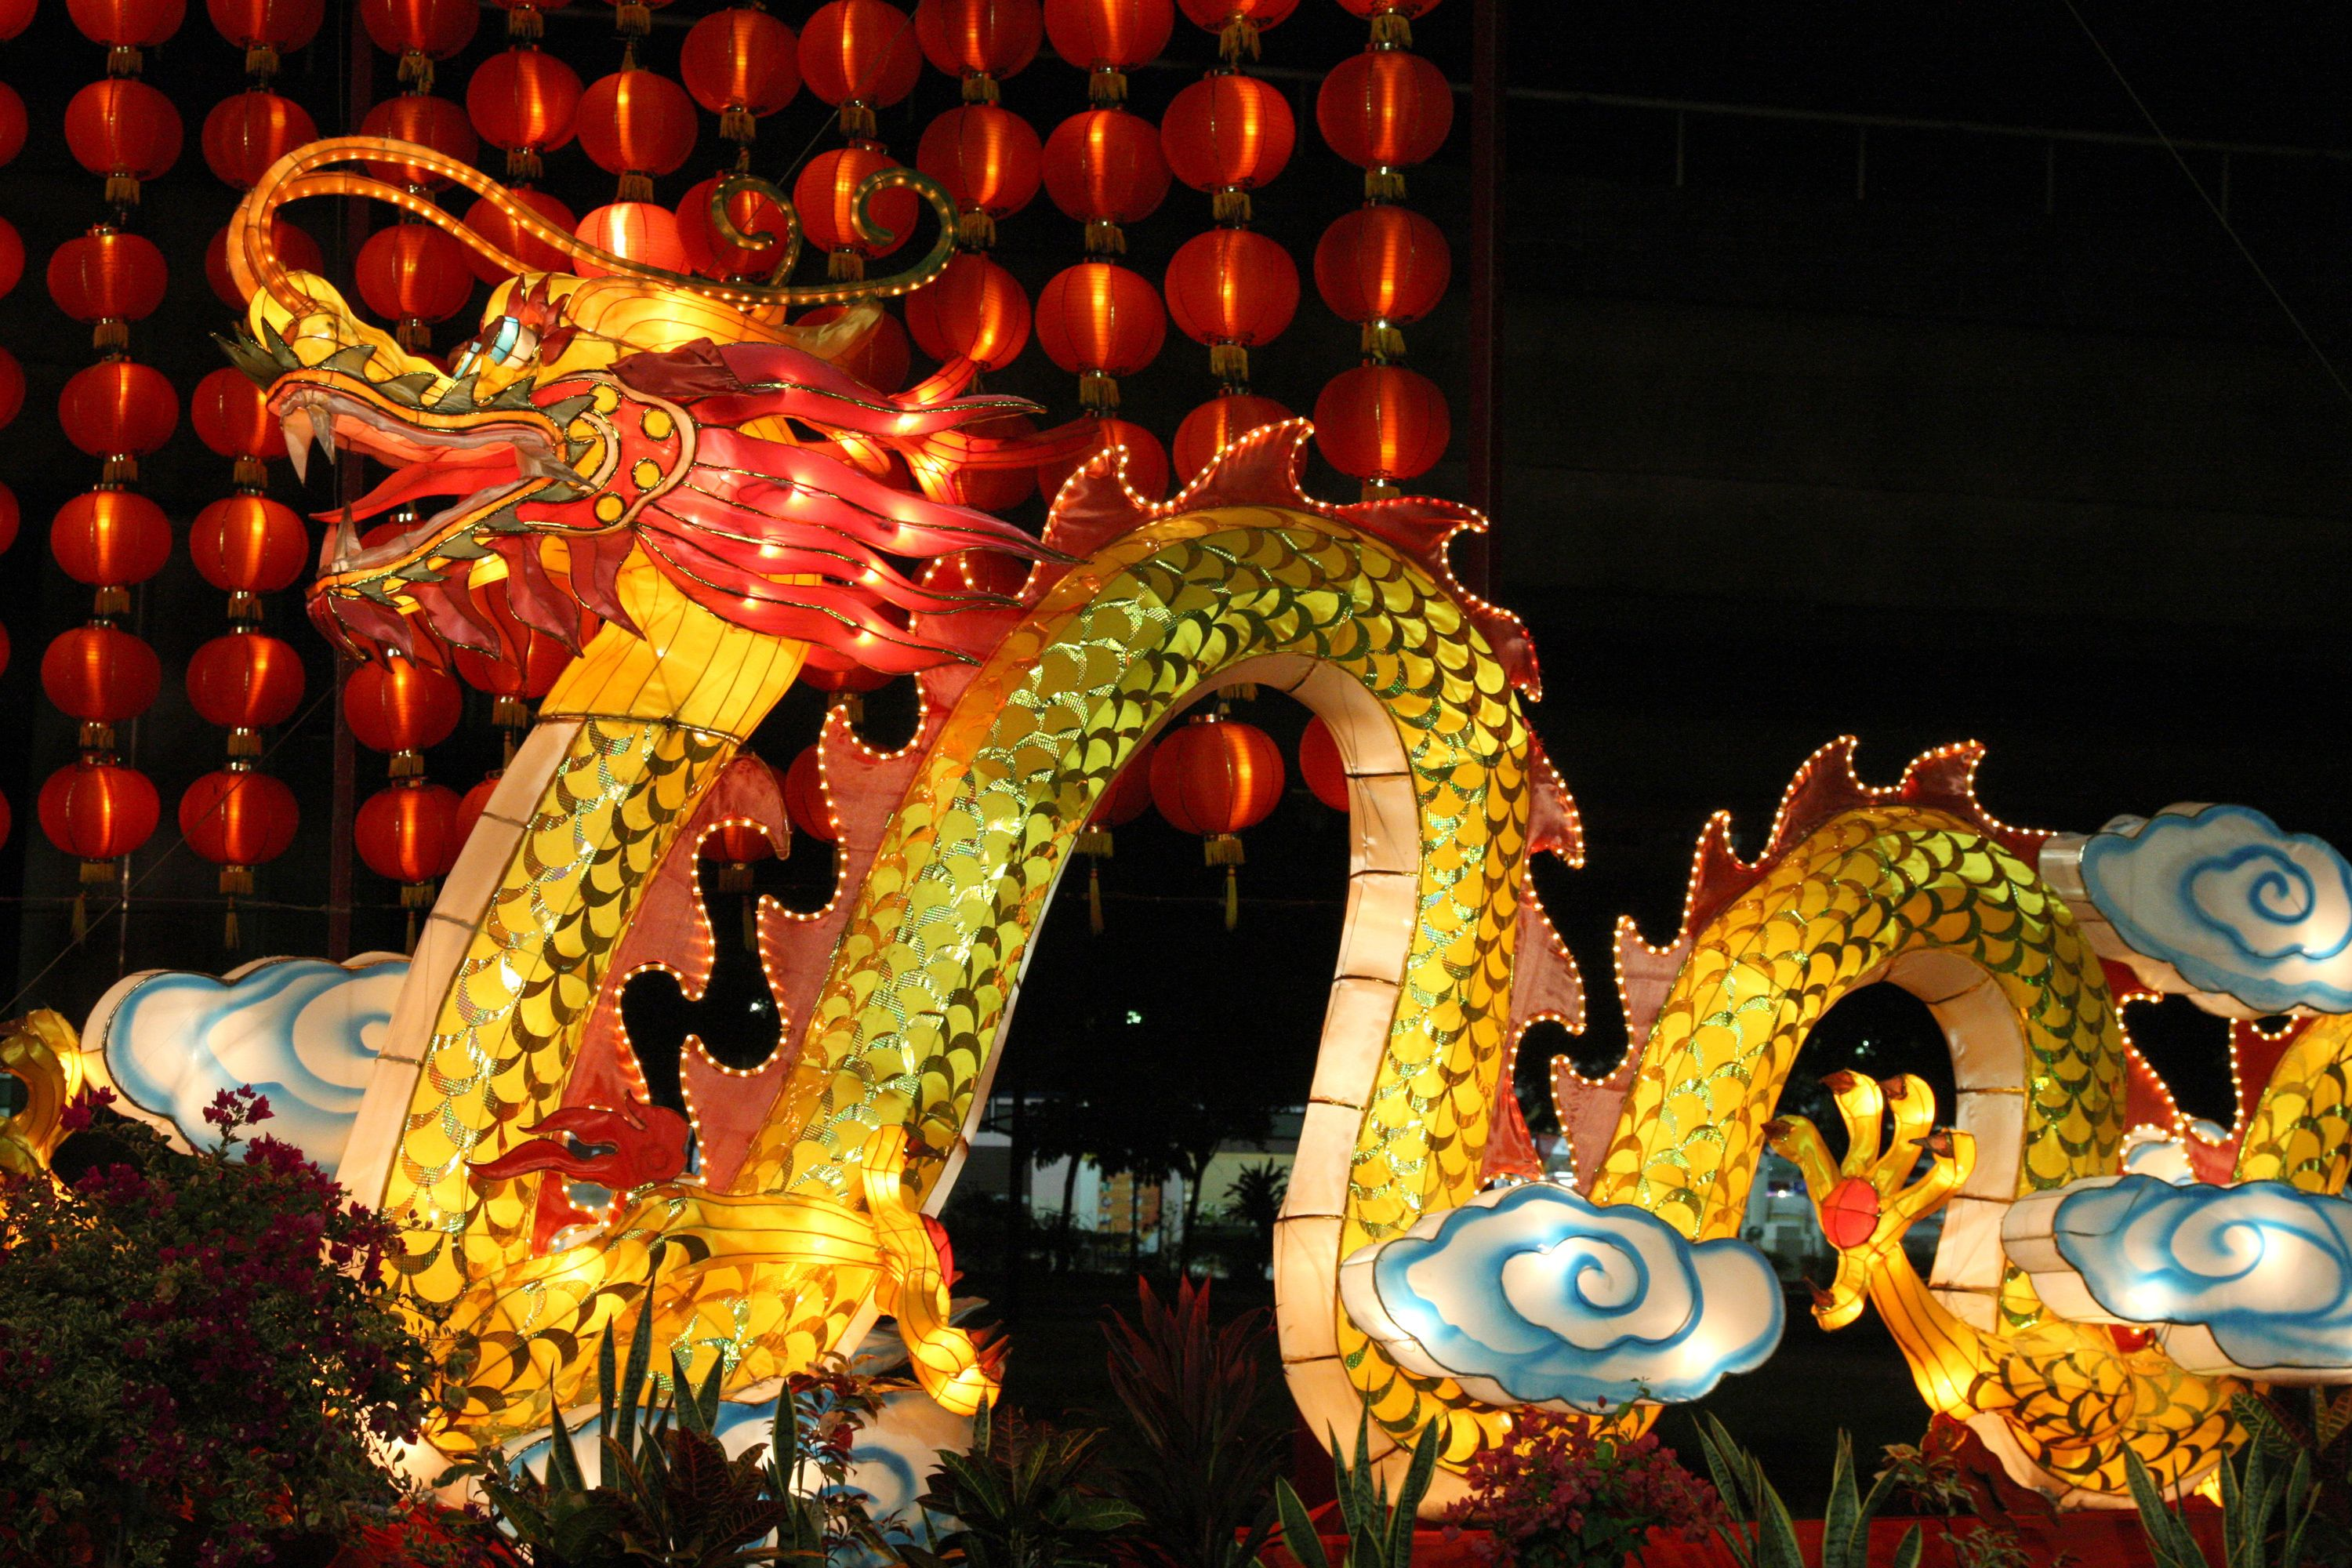 Chinese New Year in Singapore I still can remember all the